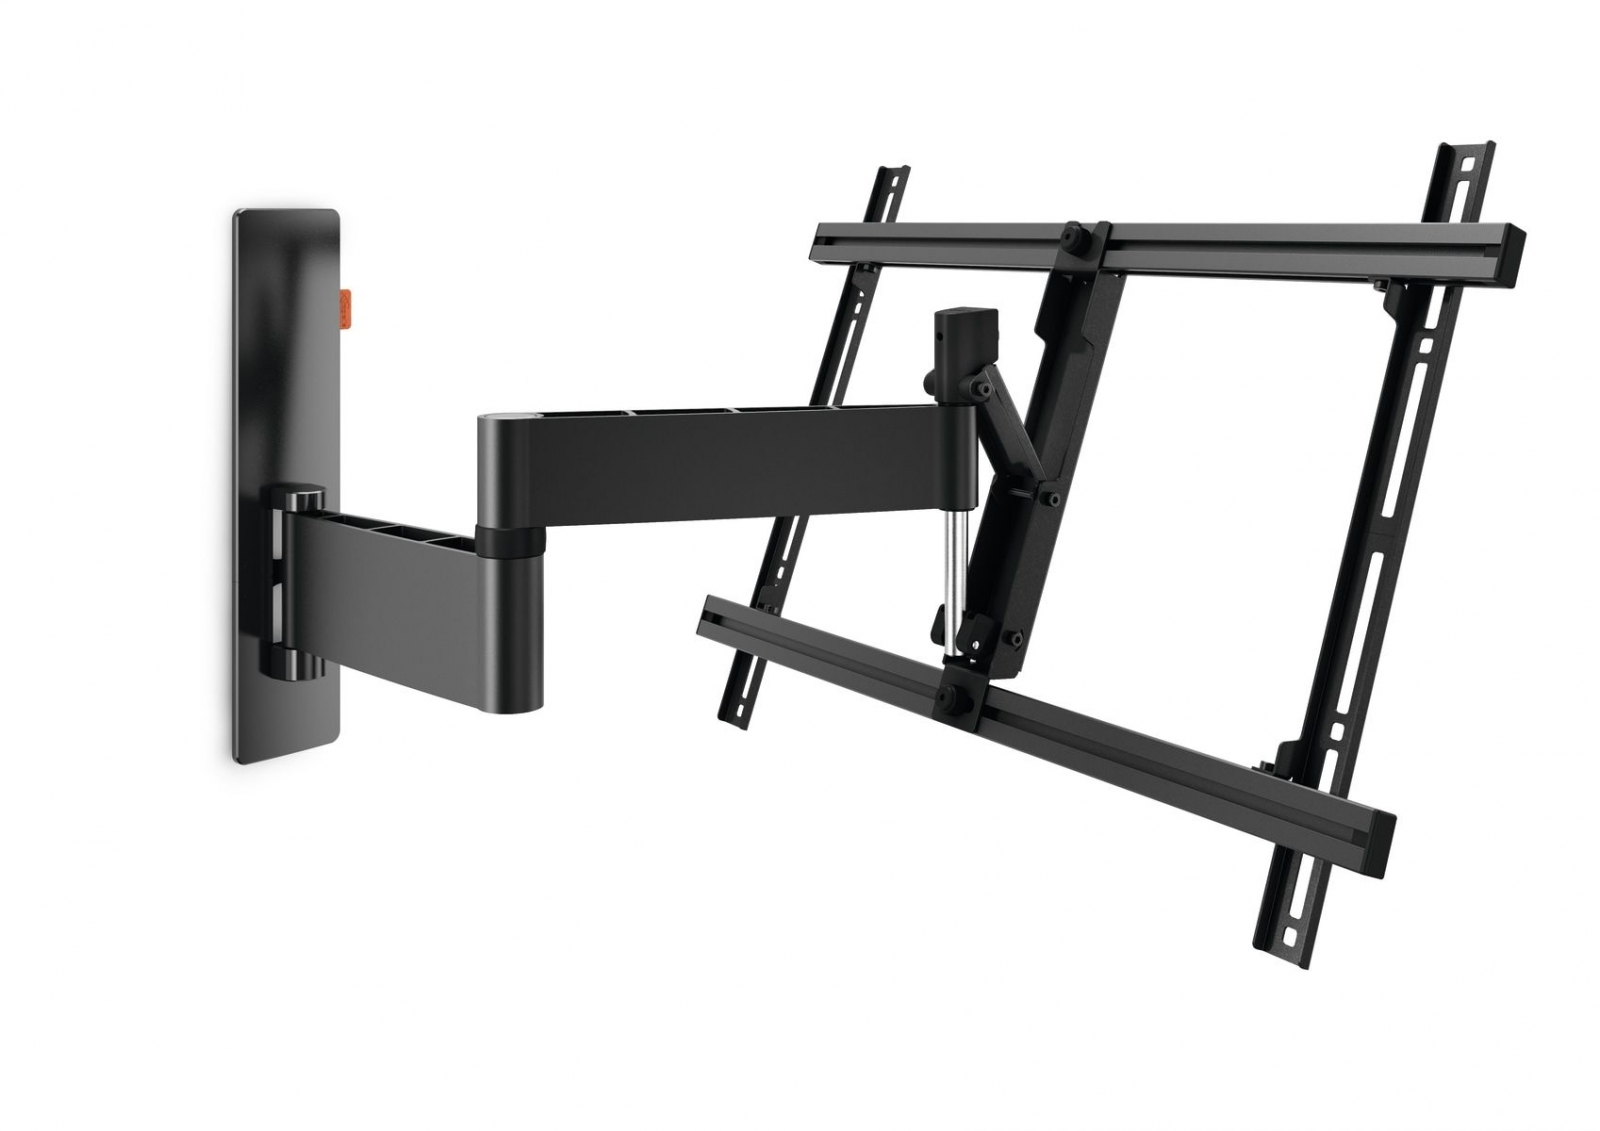 Vogels W53080 Wall Support 2 arms 40-65' Black